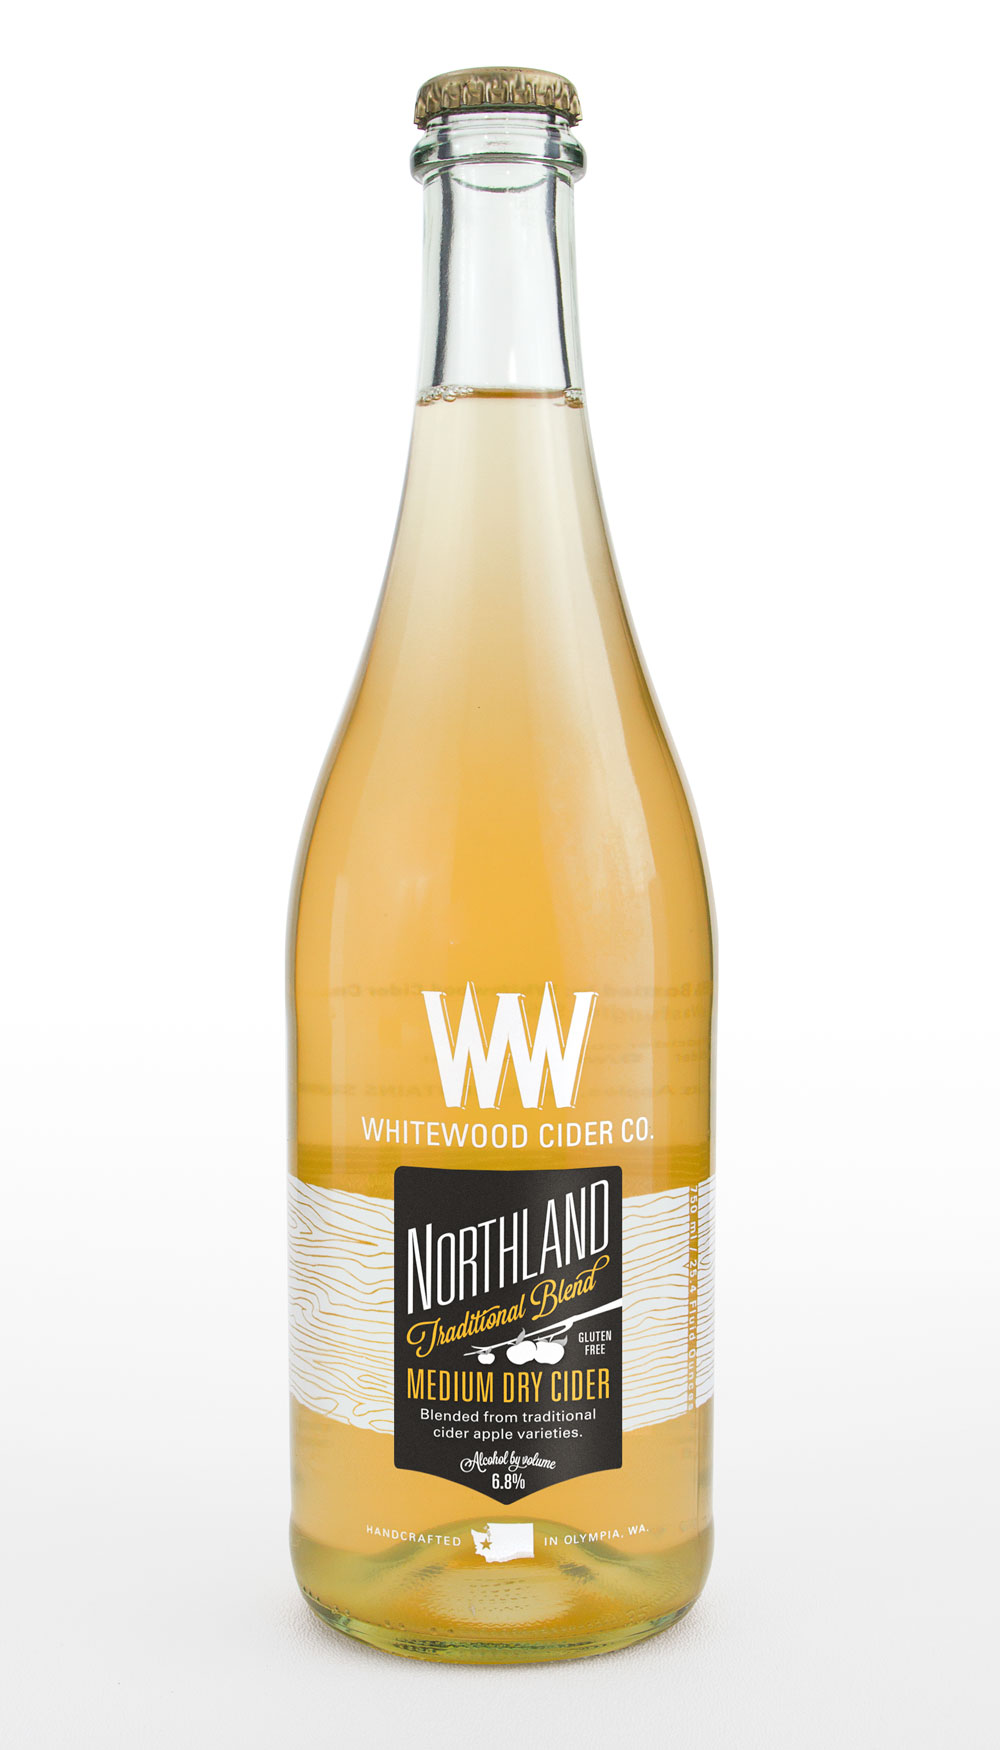 wwc_bottle_nl_01.jpg